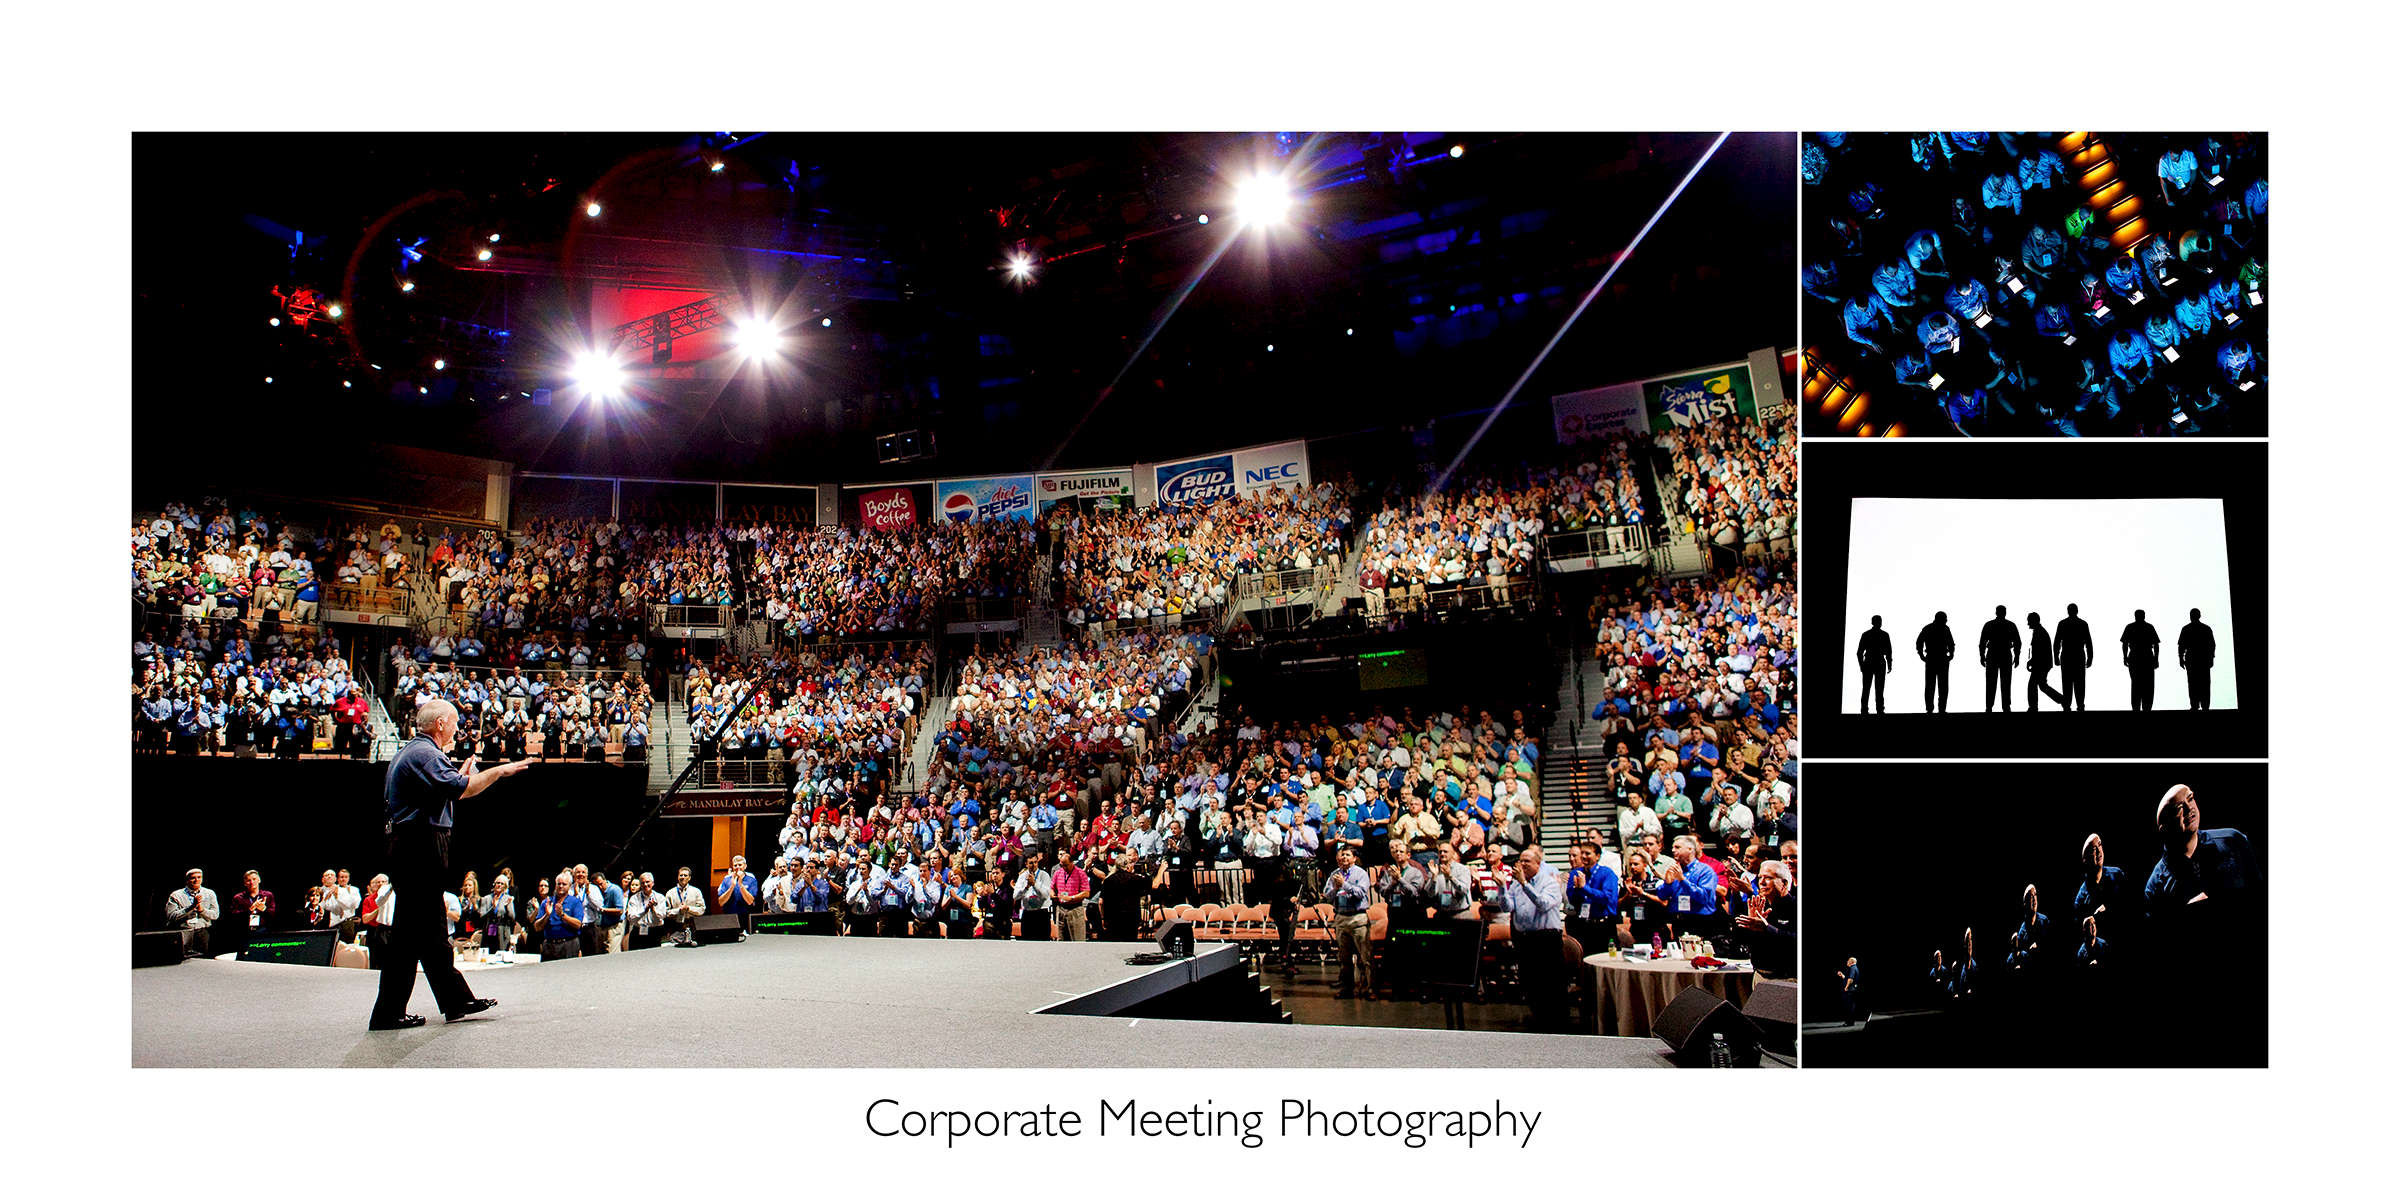 Corporate_Meeting_Photography_778s